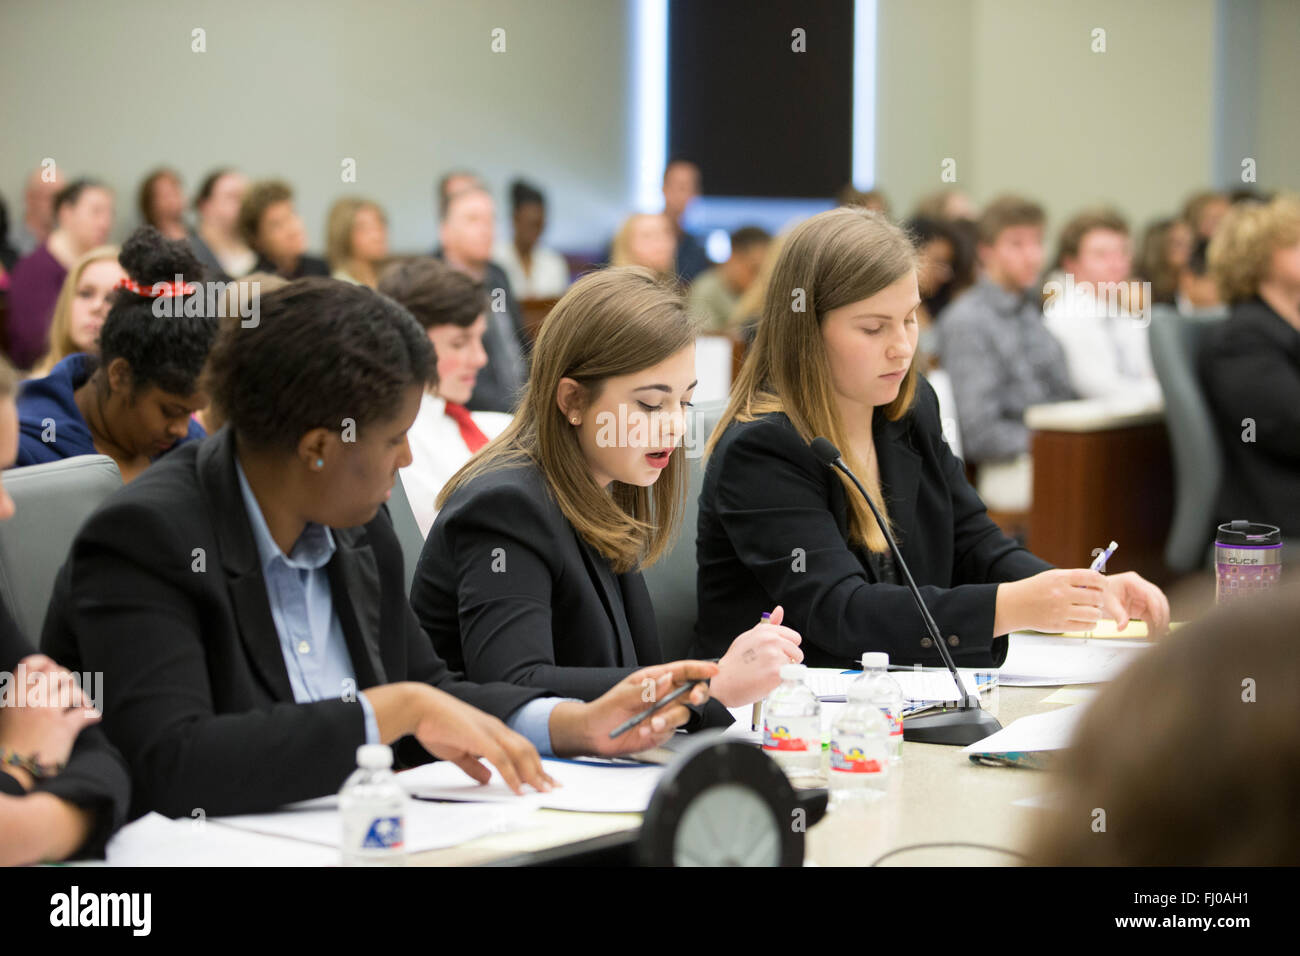 Teens posing as defense attorneys in mock trial for high school students participate in proceedings in county courtroom - Stock Image